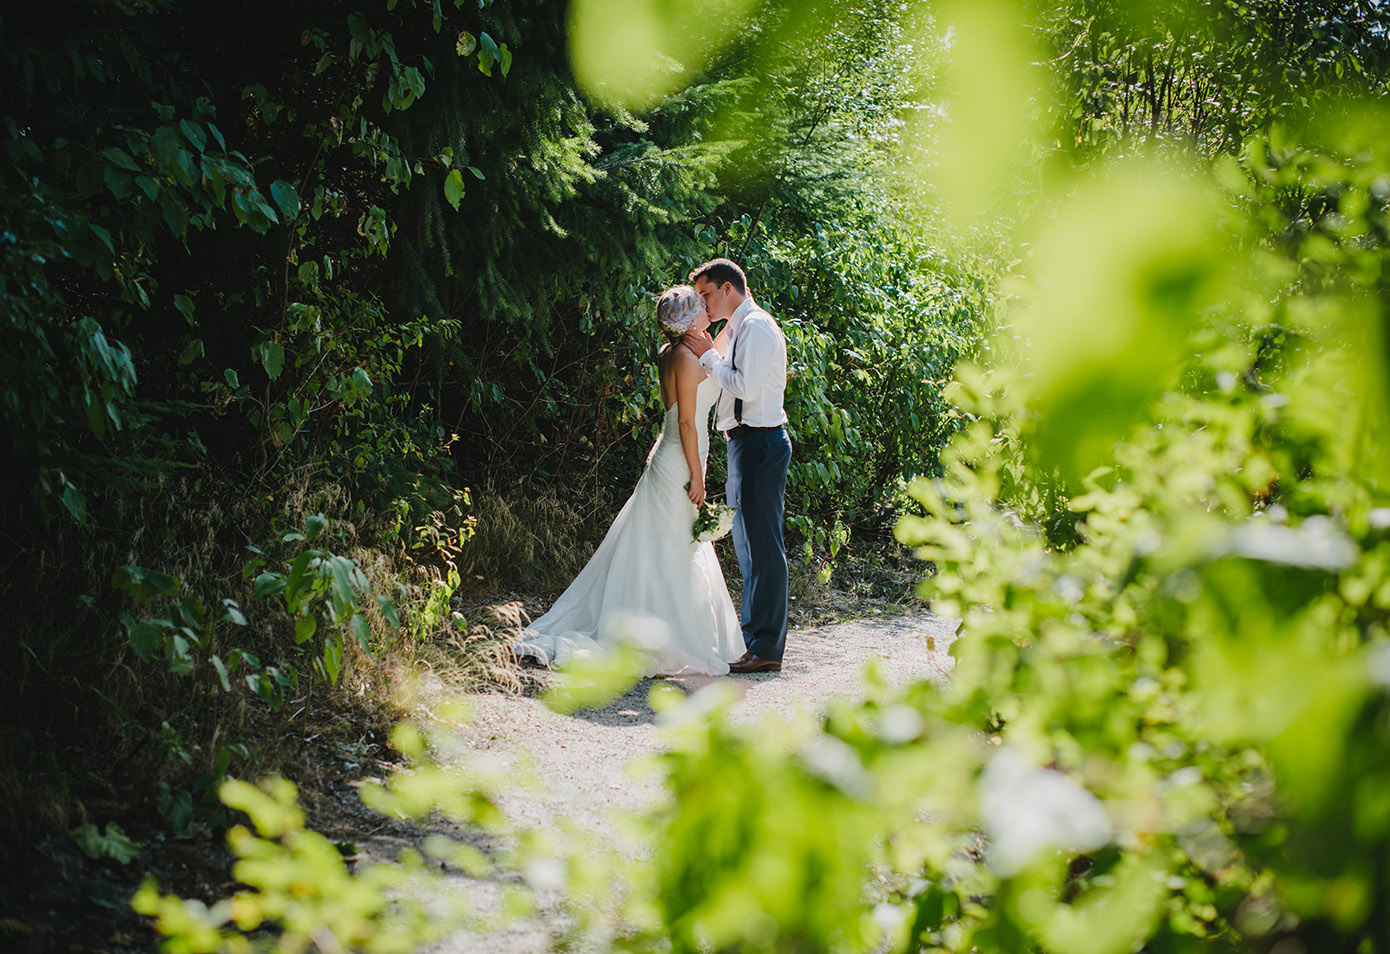 Wedding venues in Whistler | Image: Darby McGill Photography